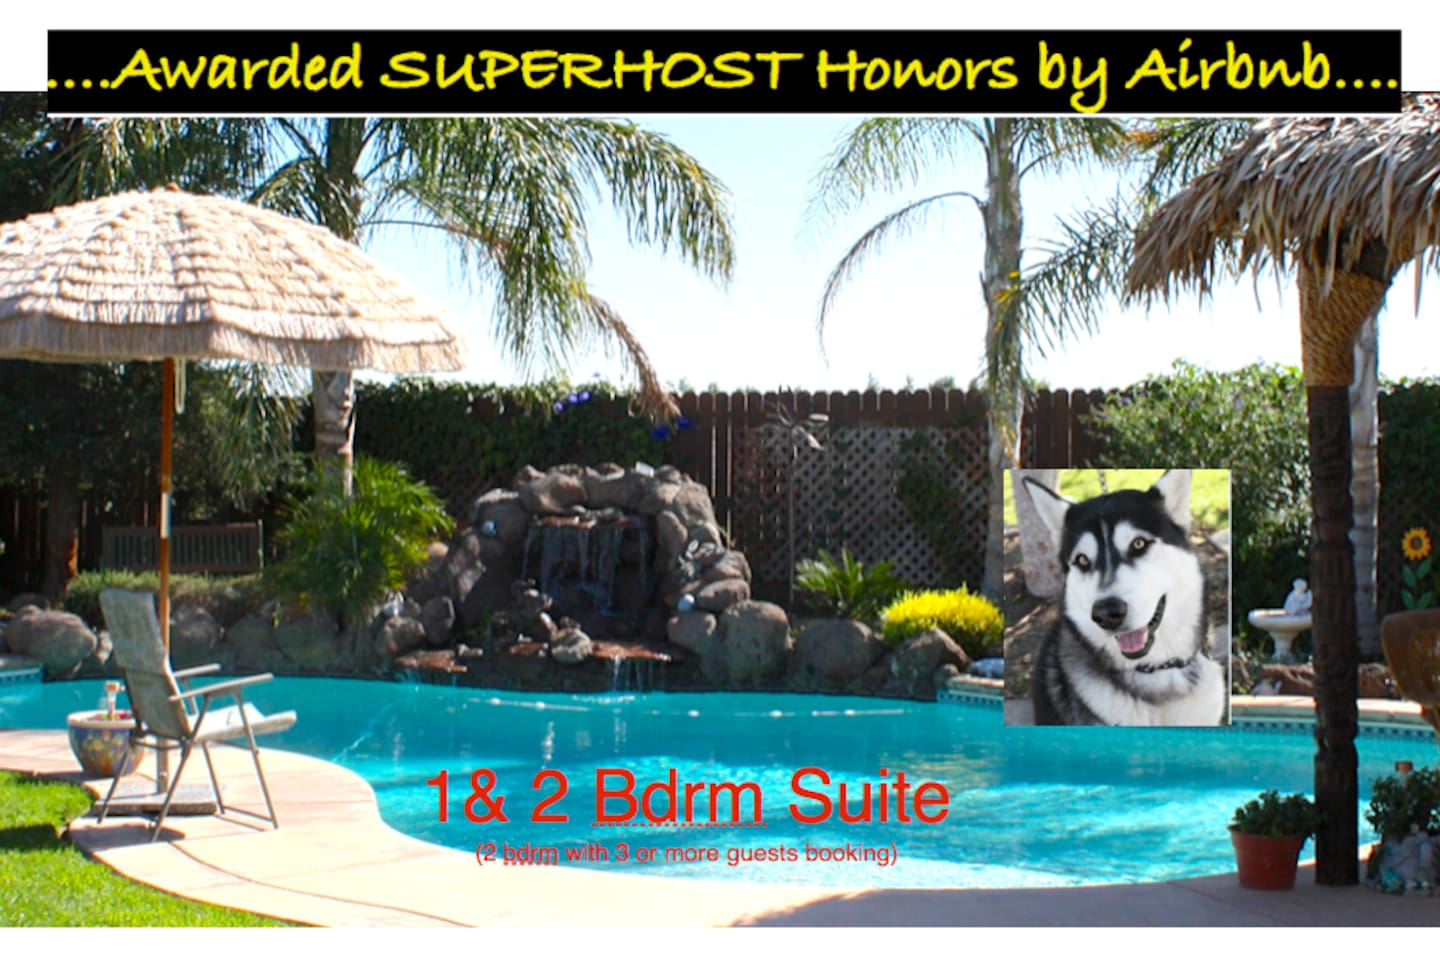 Peaceful waterfall, Palapa hut/BBQ area(see add'l photos) and my pup, Koda.